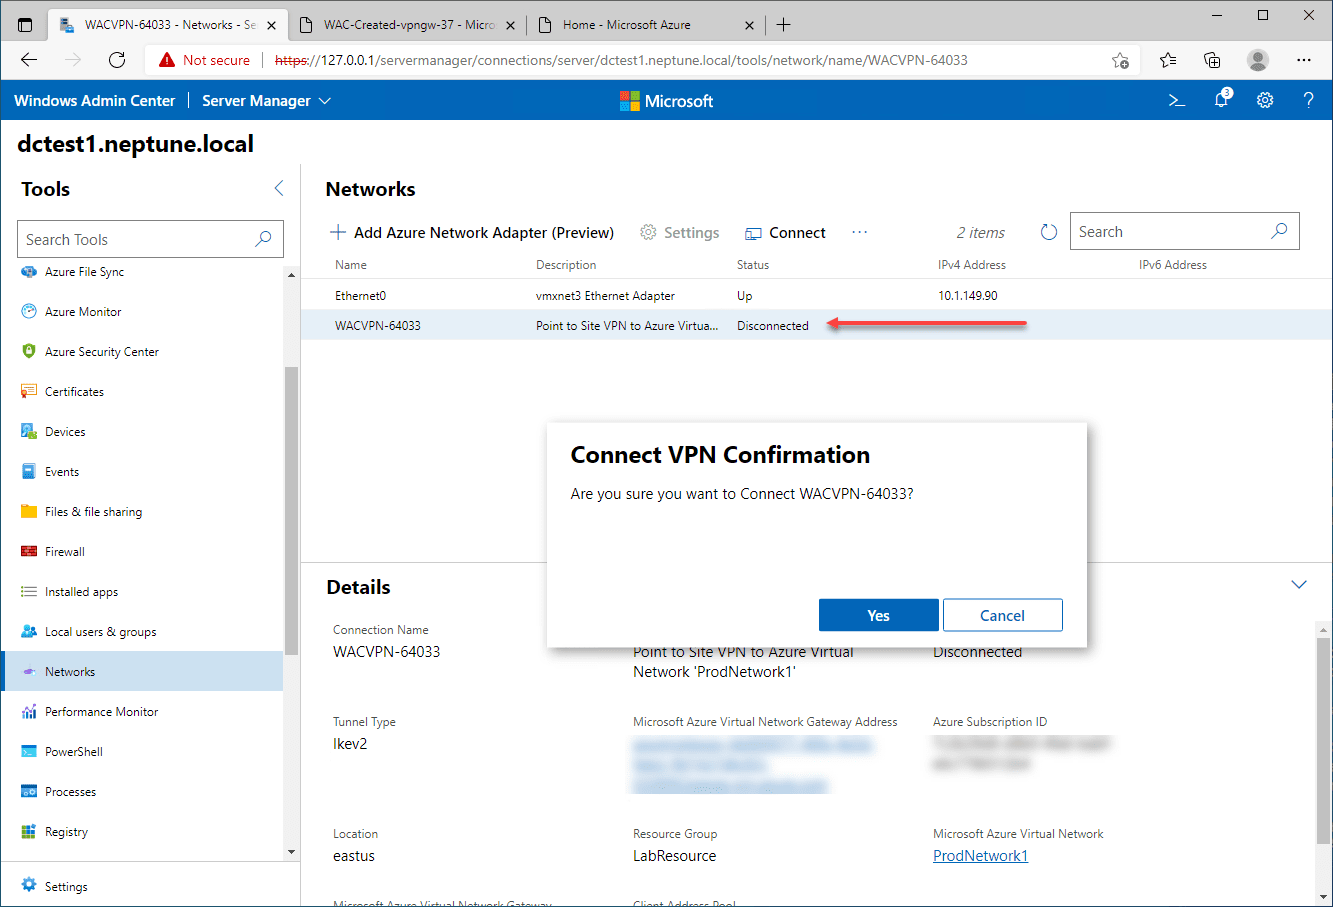 Right click the connection and select to connect